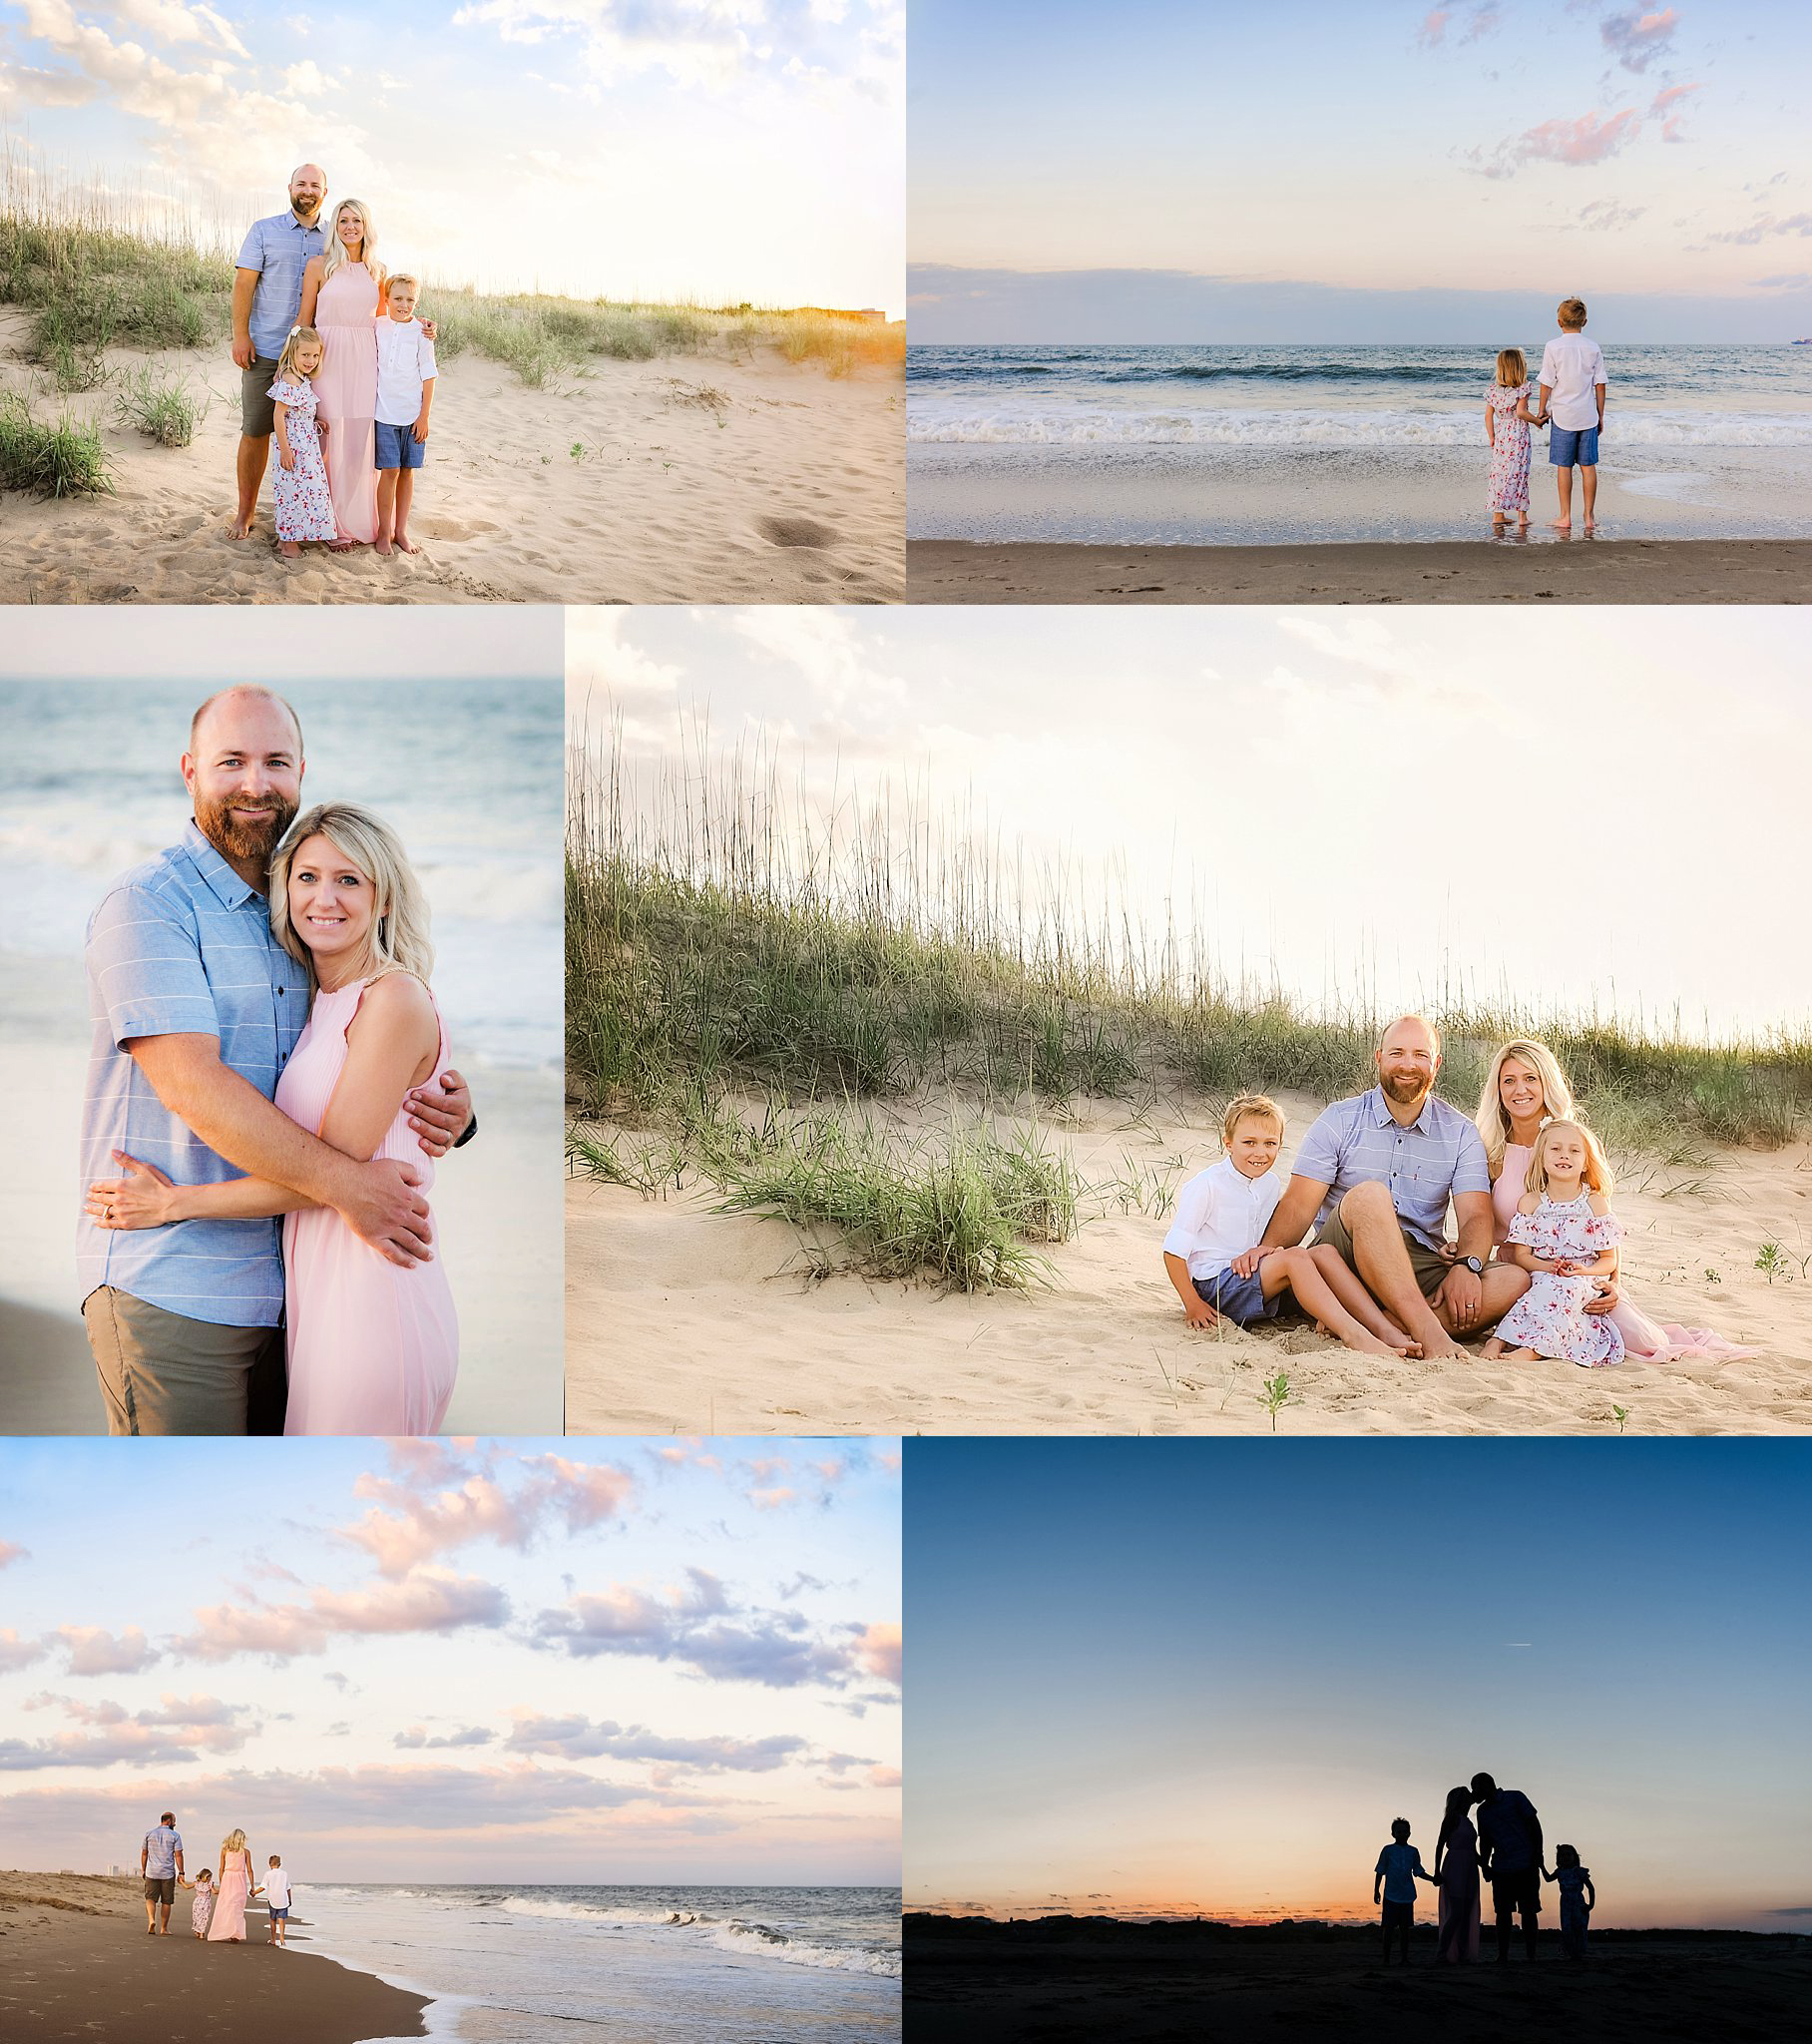 lifestyle-family-beach-photos-virginia-beach's-best-photographer-melissa-bliss-photography.jpg